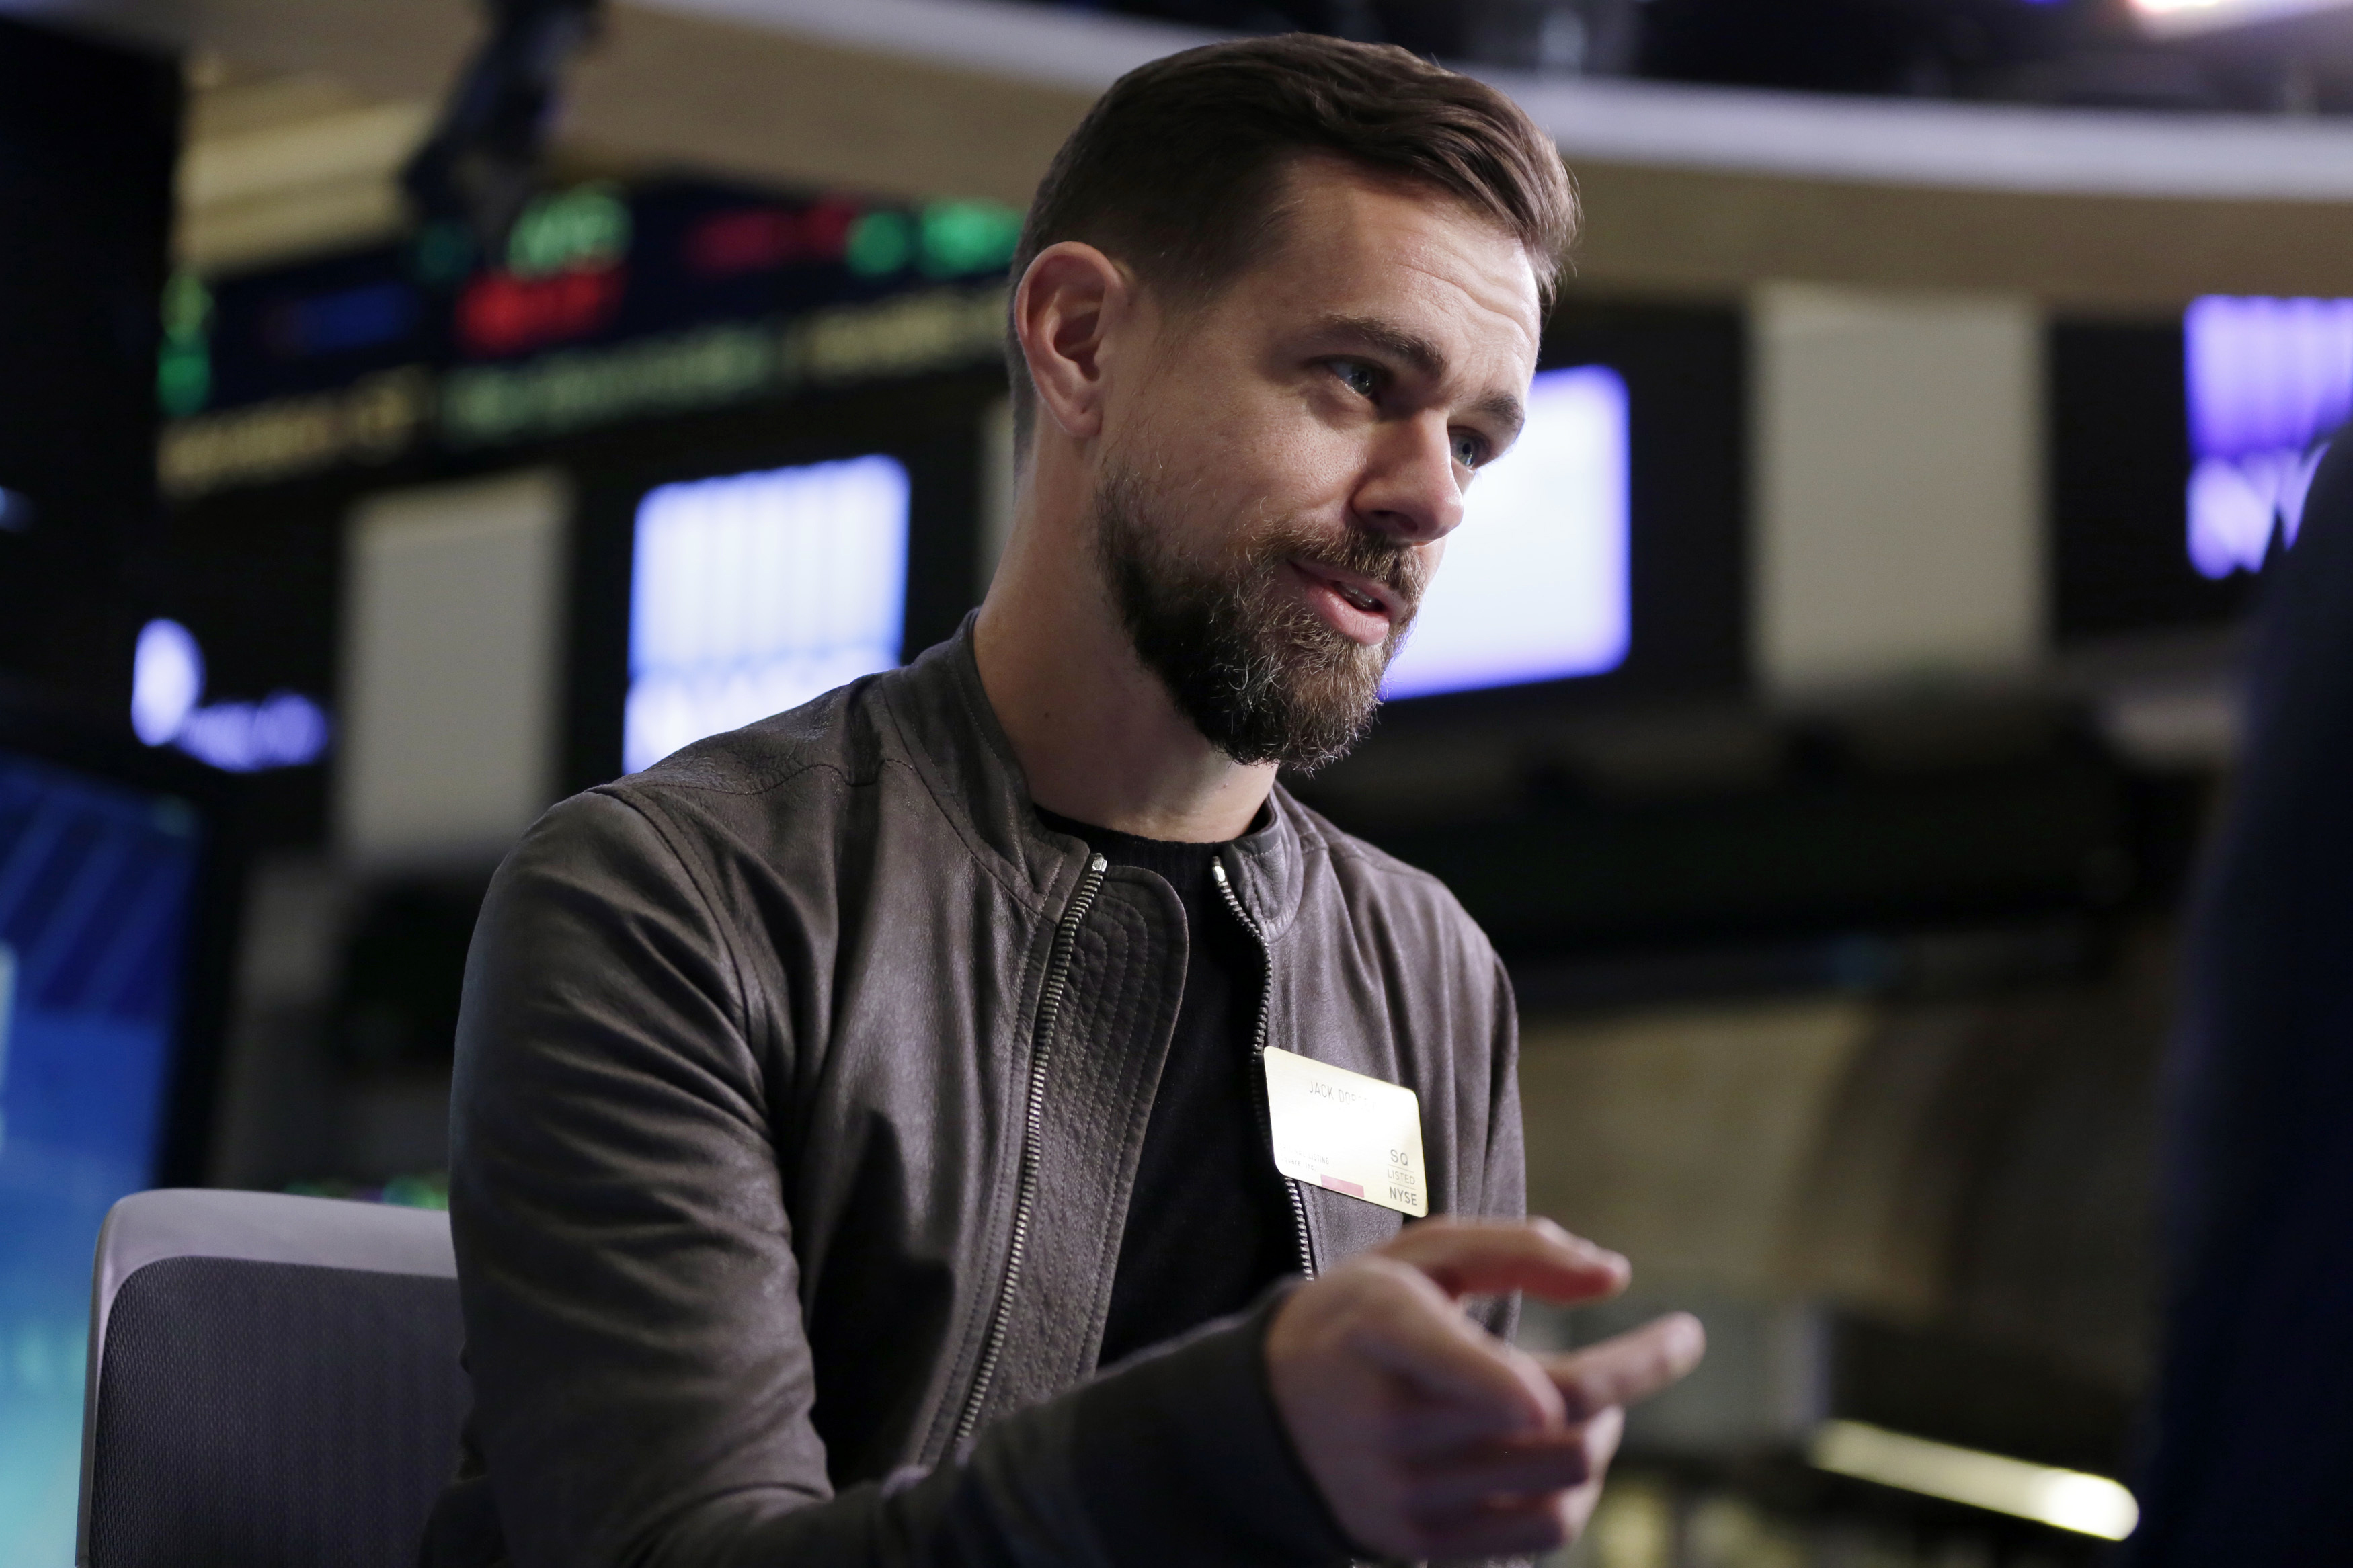 FILE - Twitter's Jack Dorsey is interviewed on the floor of the New York Stock Exchange, Nov. 19, 2015. The chief executive apologized Thursday, Nov. 17, 2016, after the service let through an ad promoting a white supremacist group.